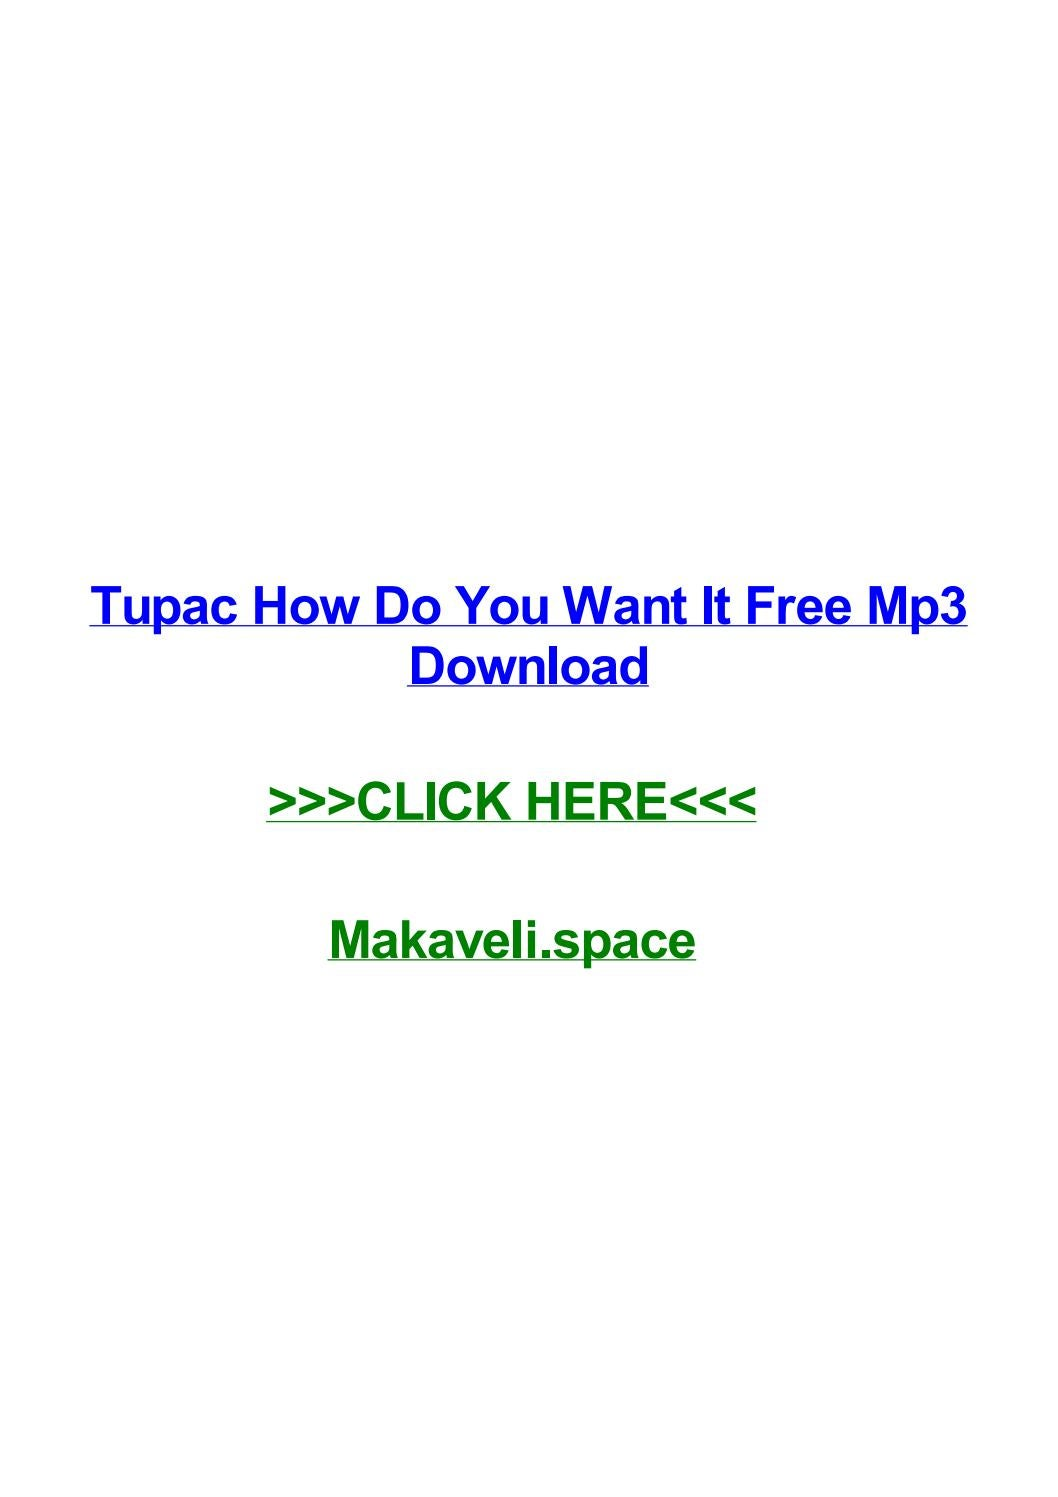 Tupac how do you want it free mp3 download by quintinrxze